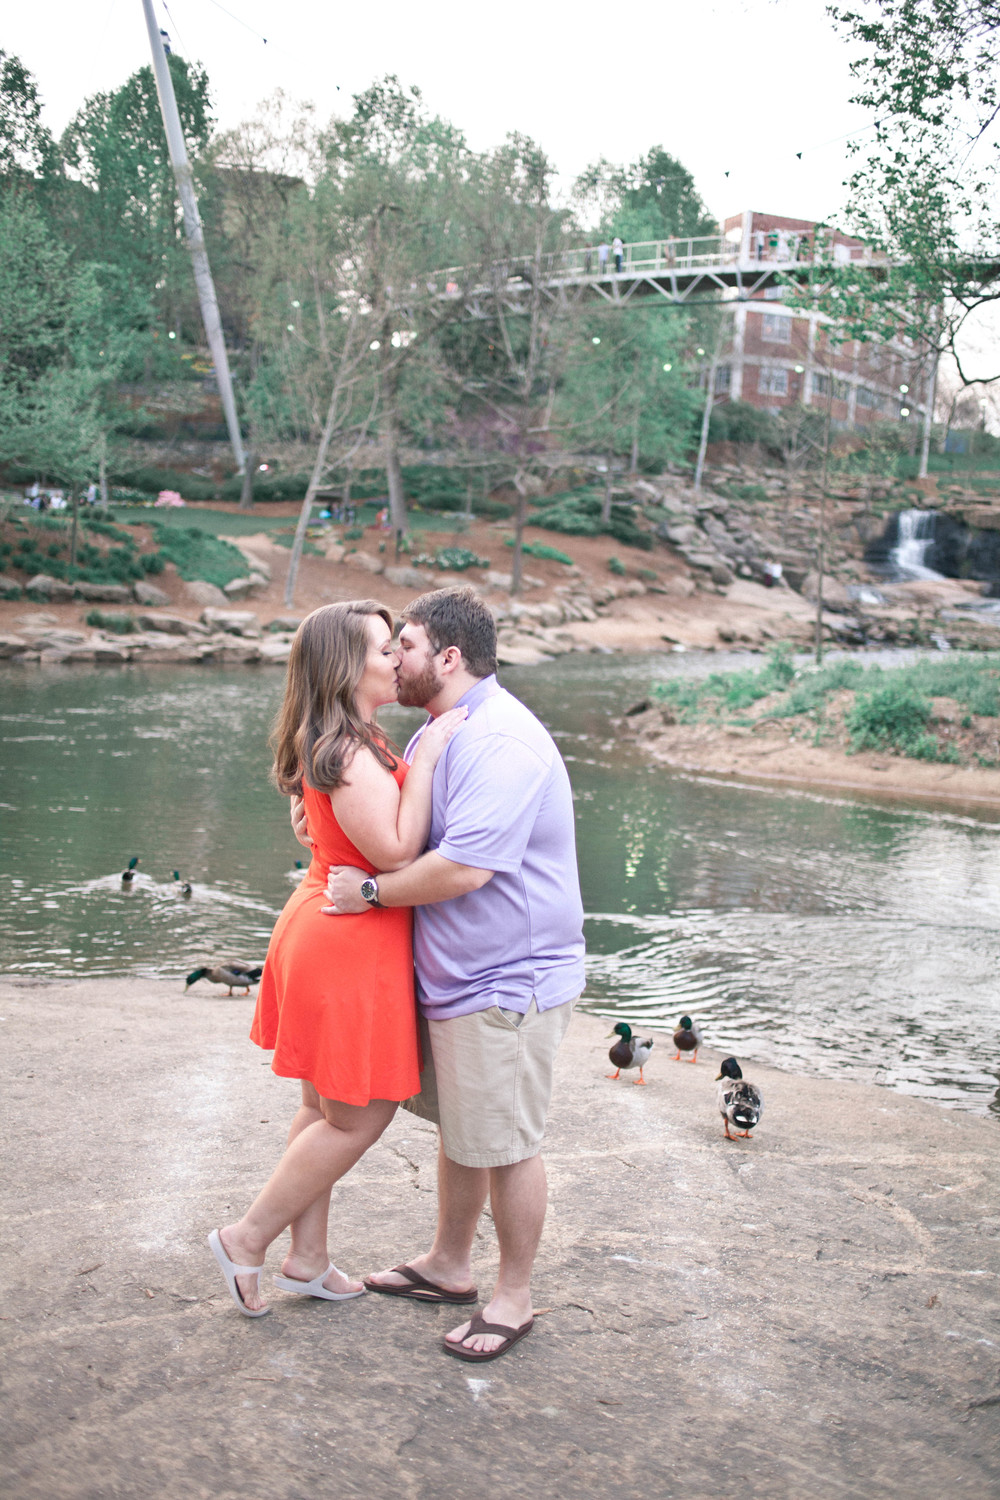 zach_gabbie_engagement_poured_out_photography-57.jpg